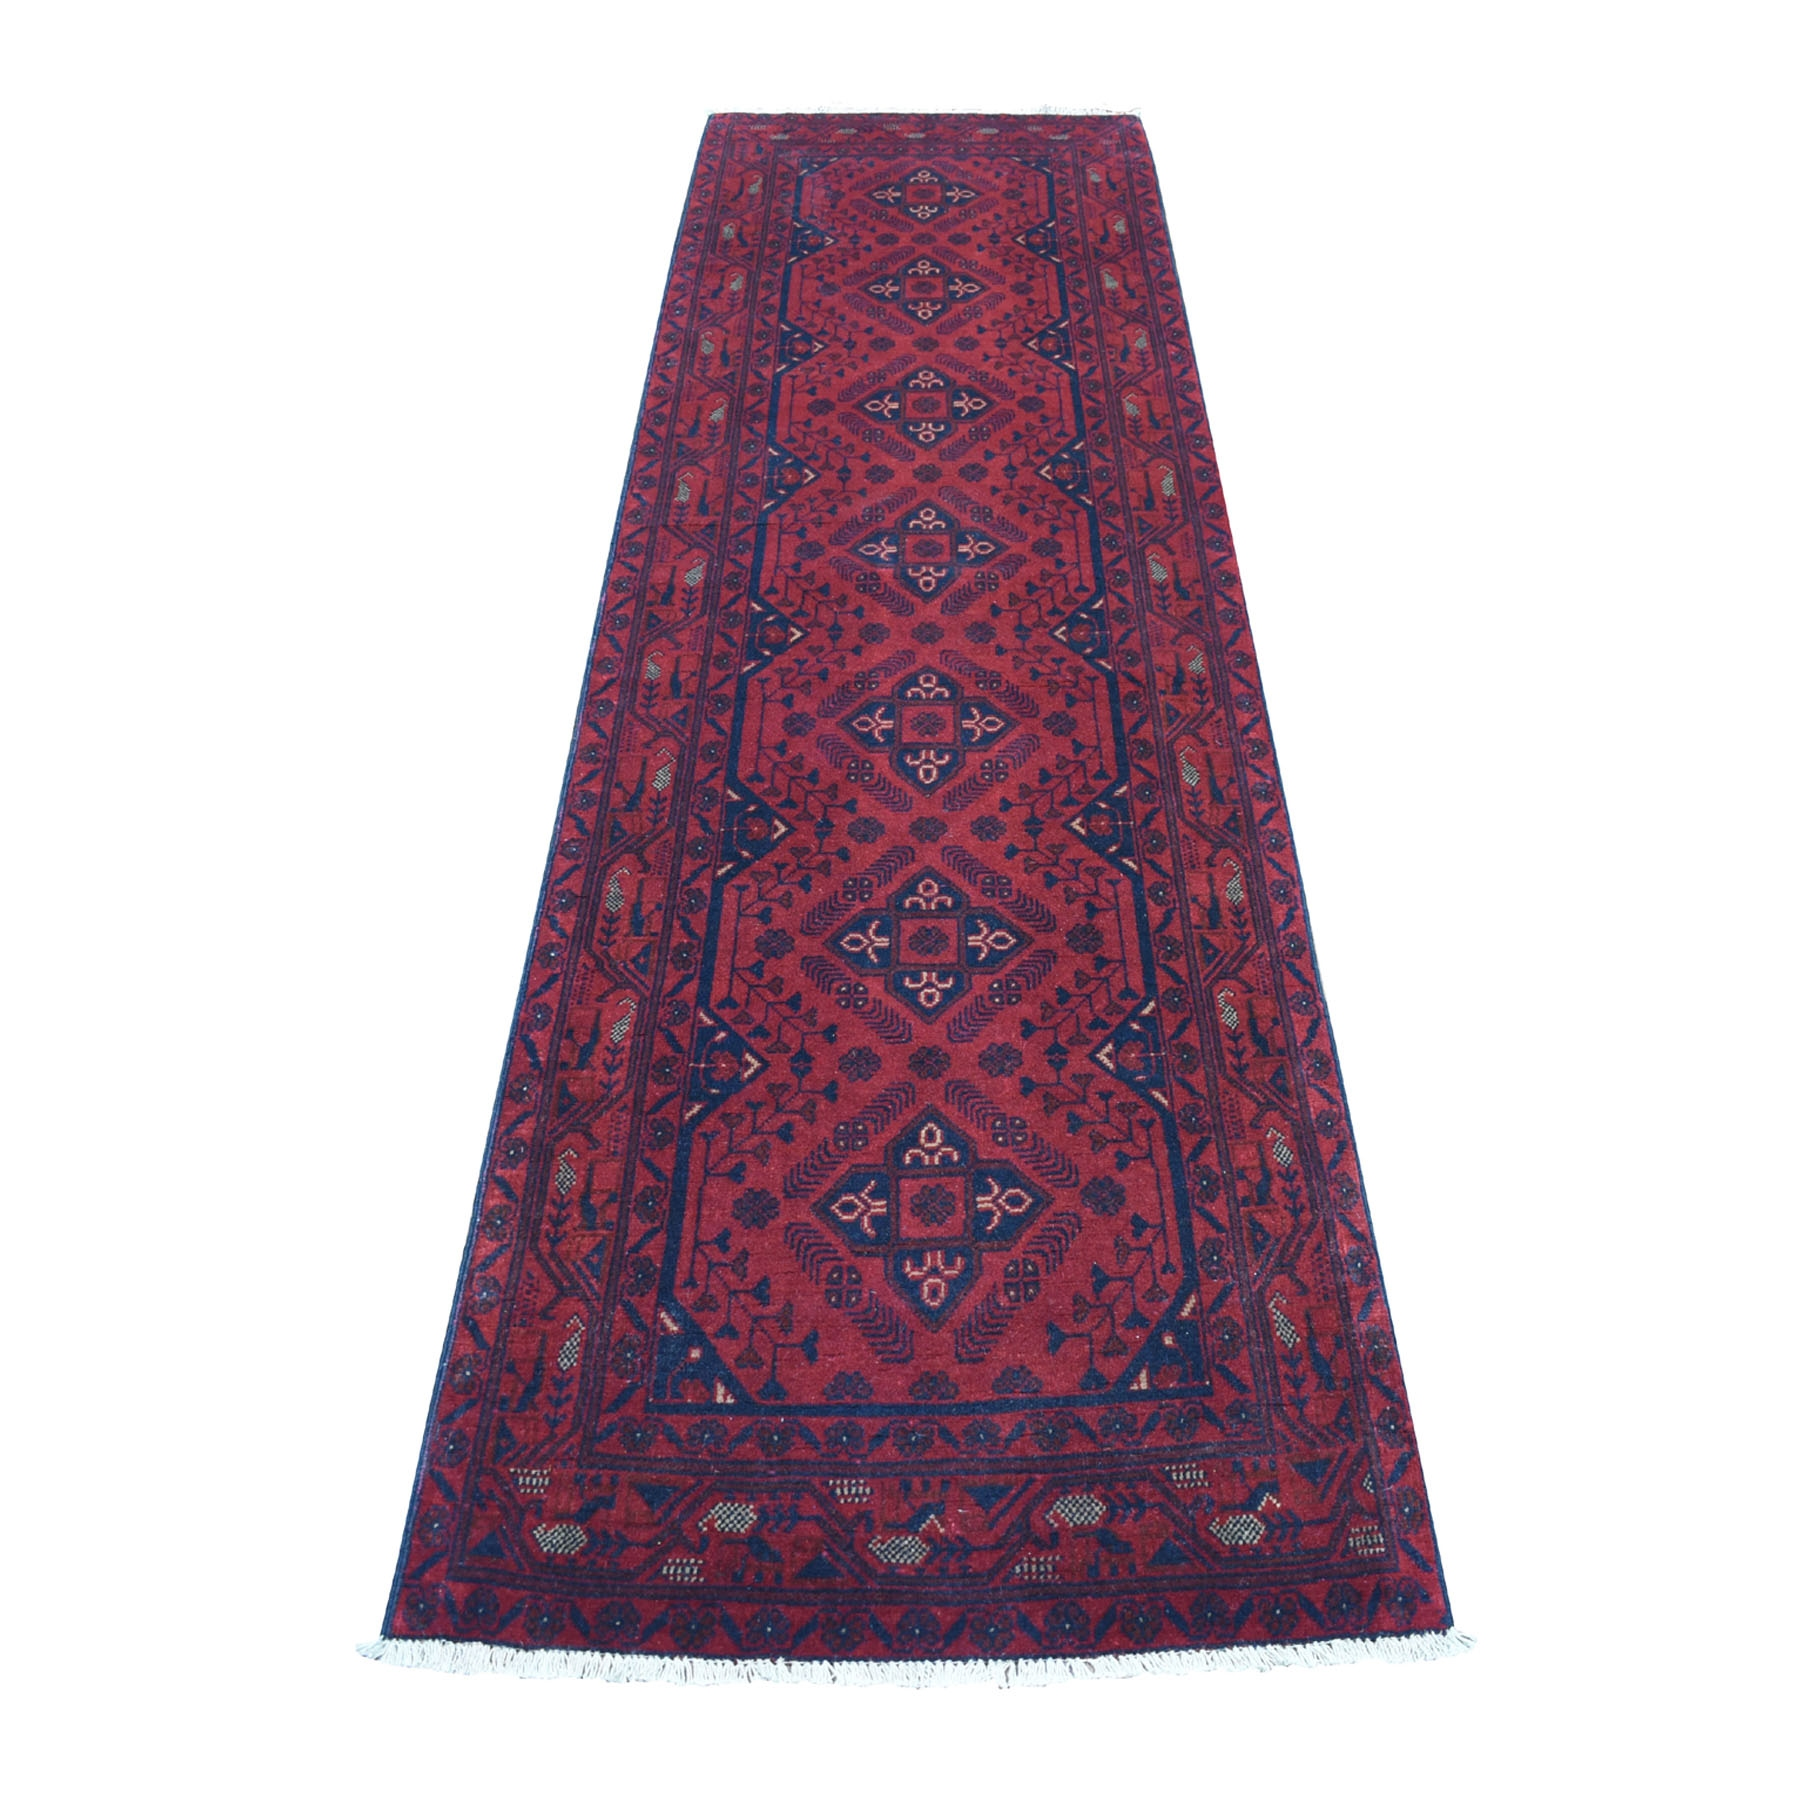 "2'9""X9'8"" Deep And Saturated Red Geometric Afghan Andkhoy Runner Pure Wool Hand Knotted Oriental Rug moaec769"